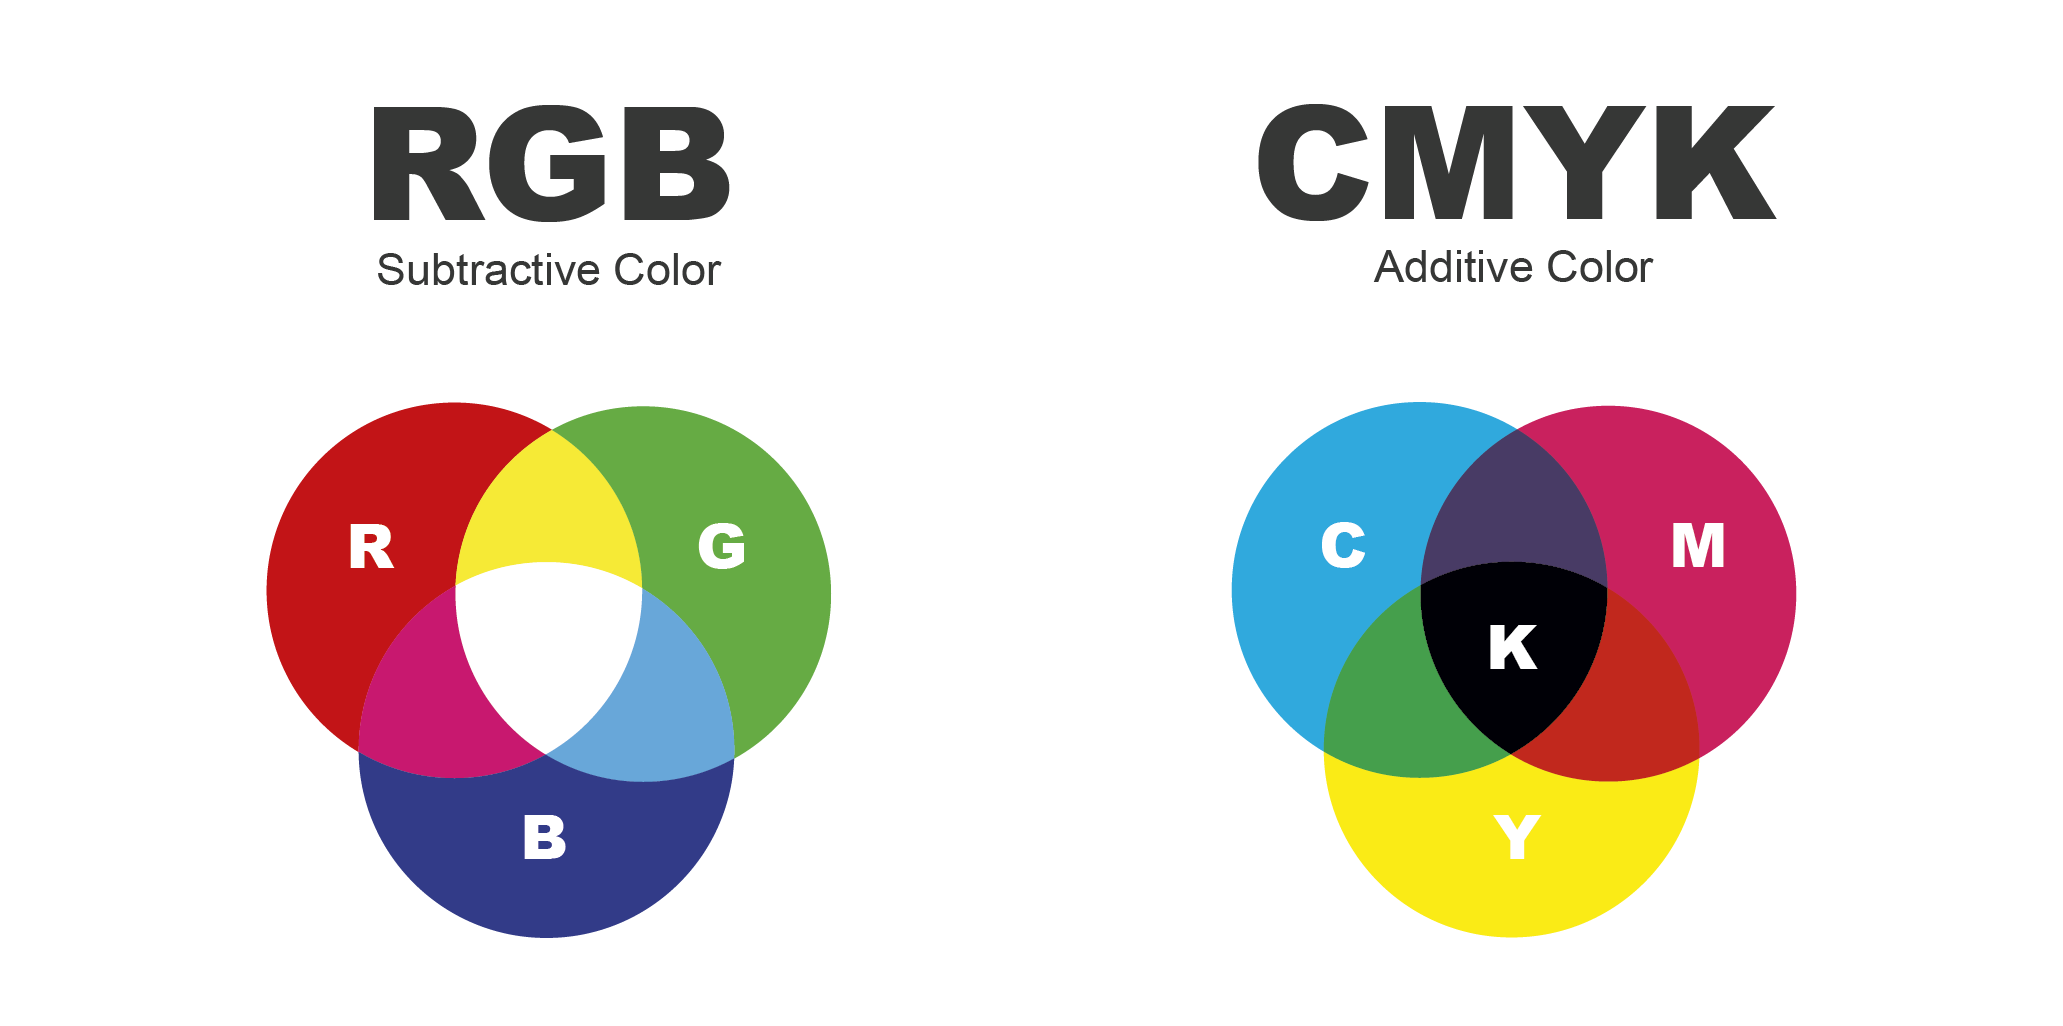 How To Convert Rgb To Cmyk